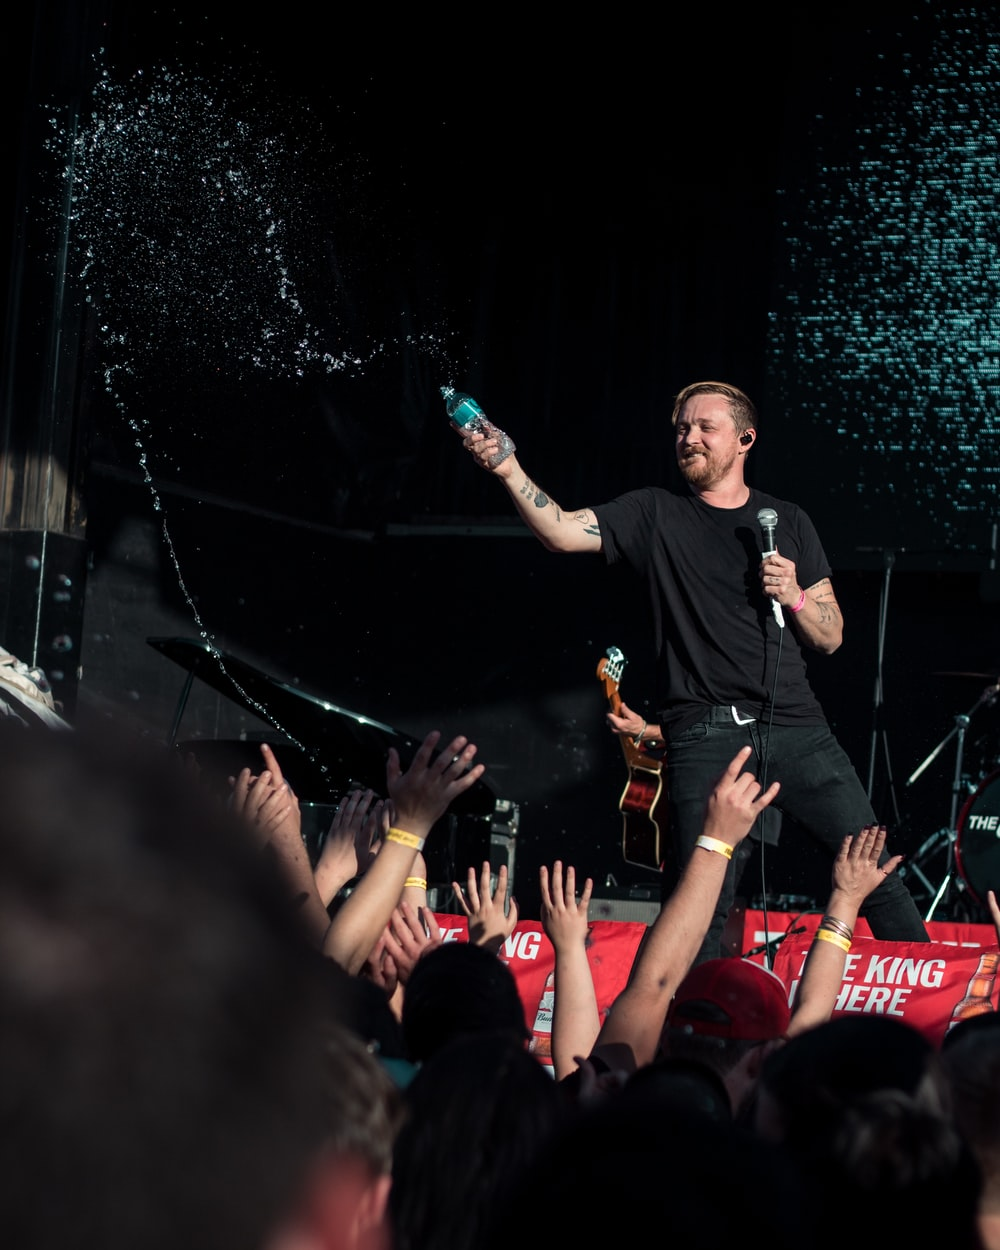 man in black crew neck t-shirt standing on stage